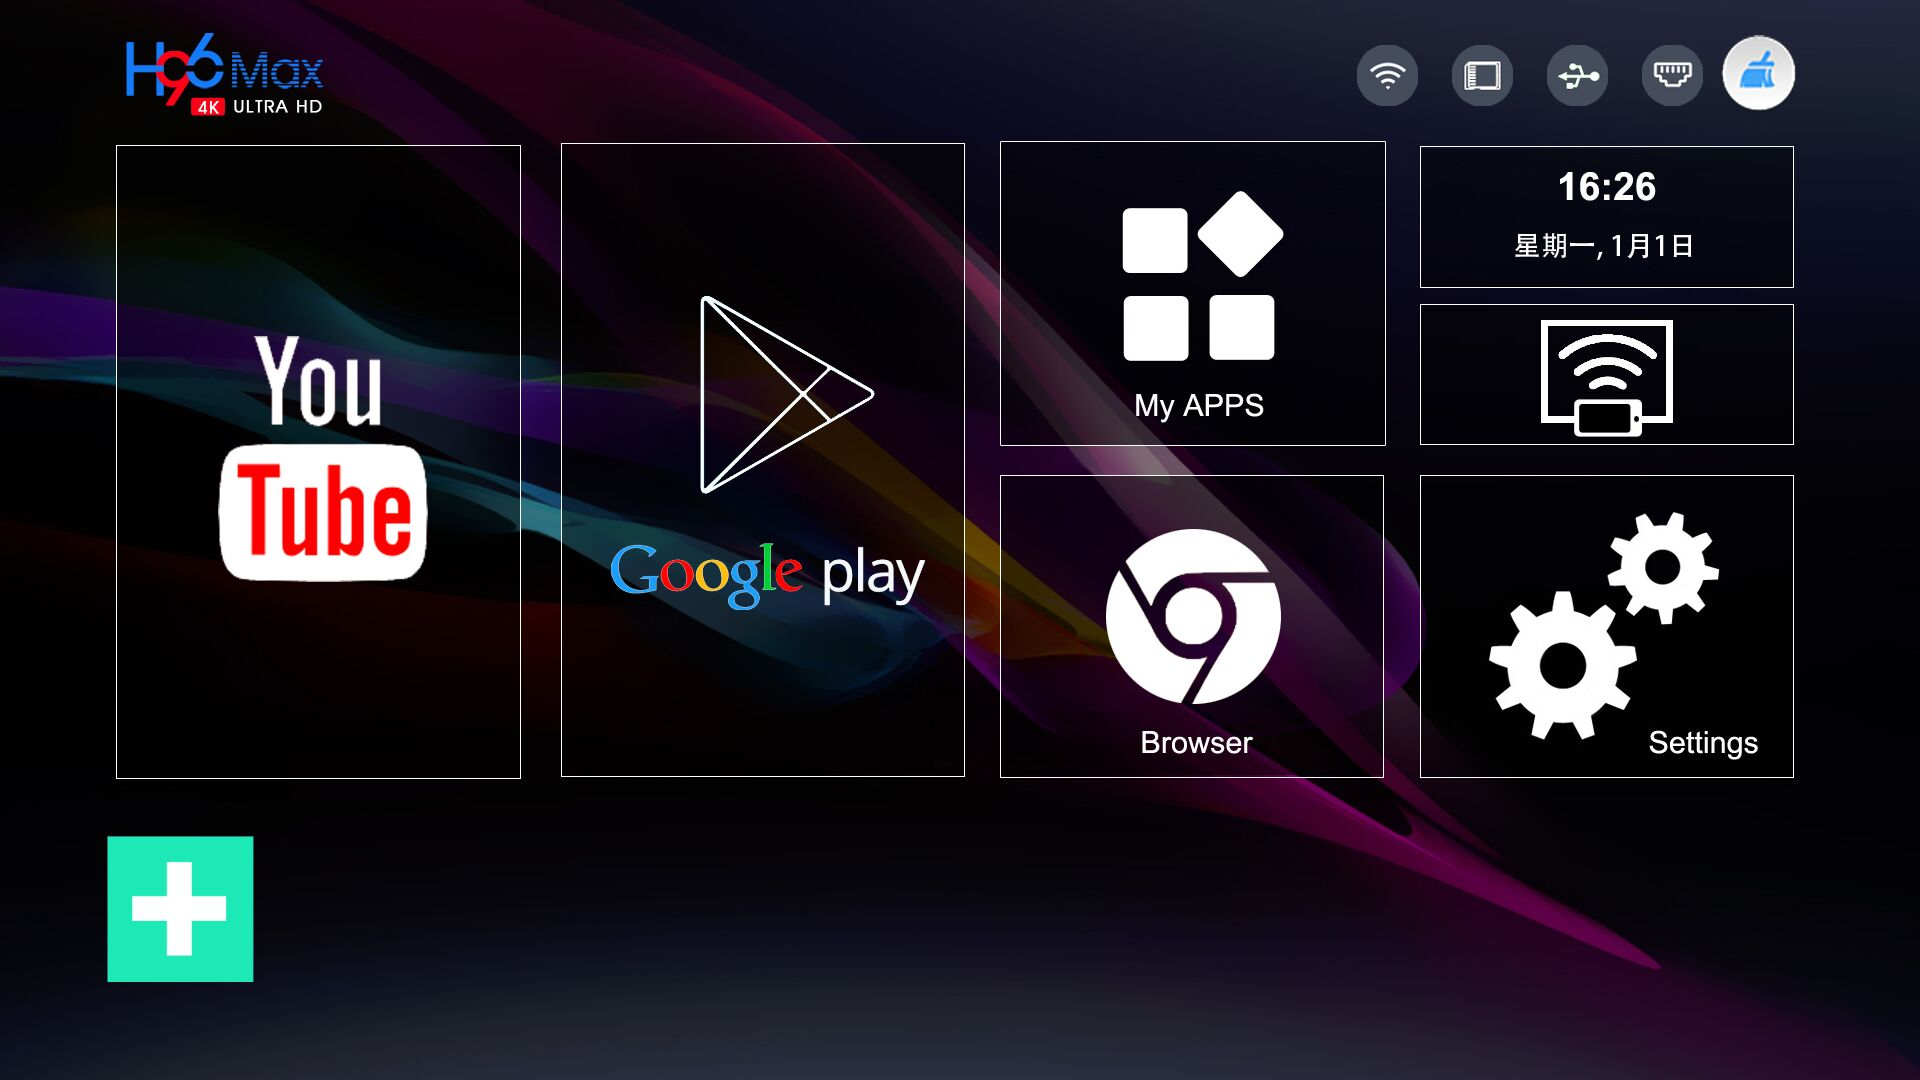 h96 tv box UI in Australia